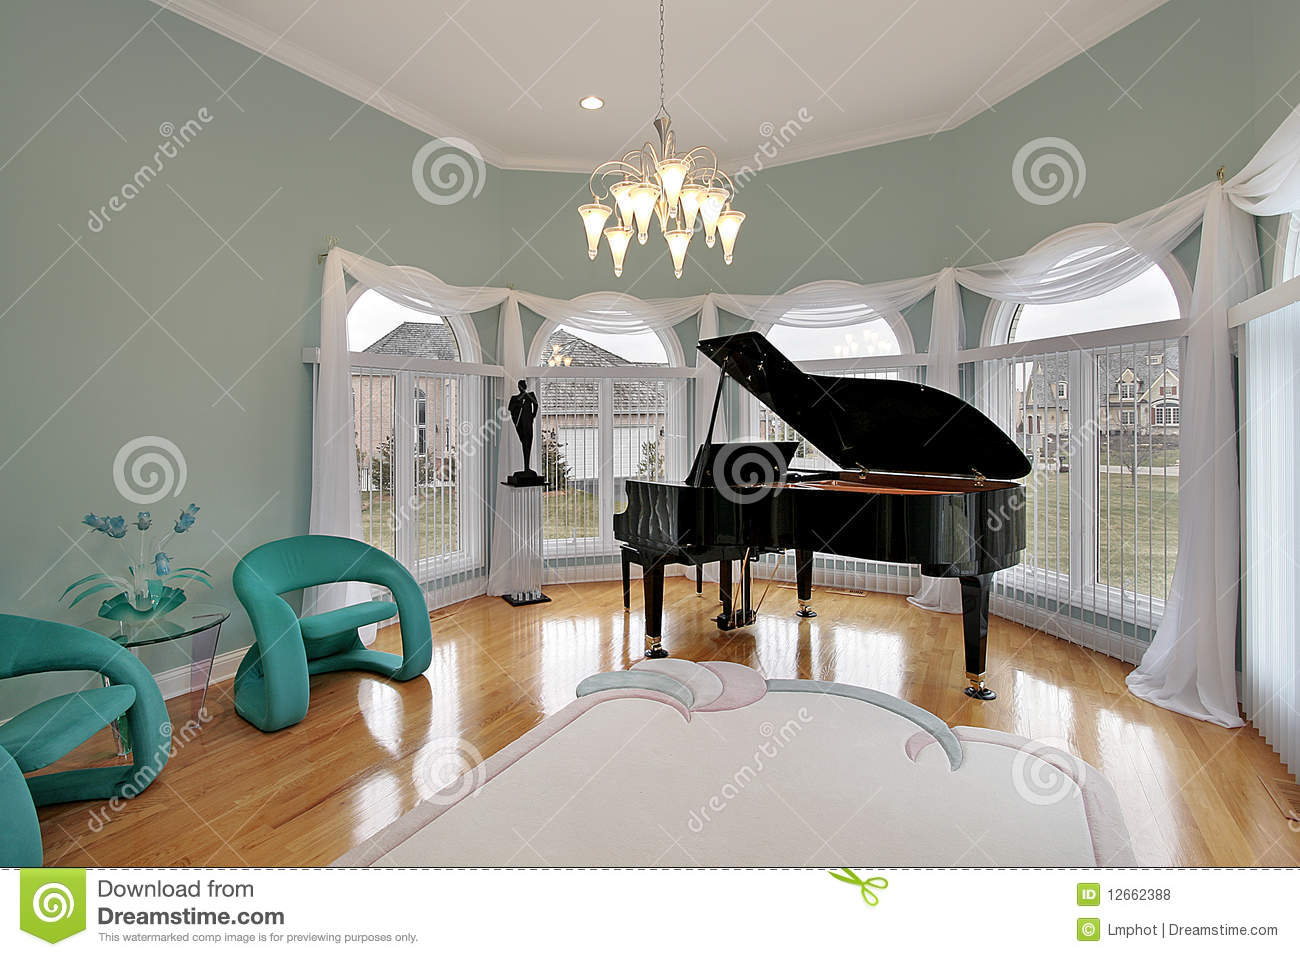 Music room with green chairs royalty free stock photos for Exclusive house music